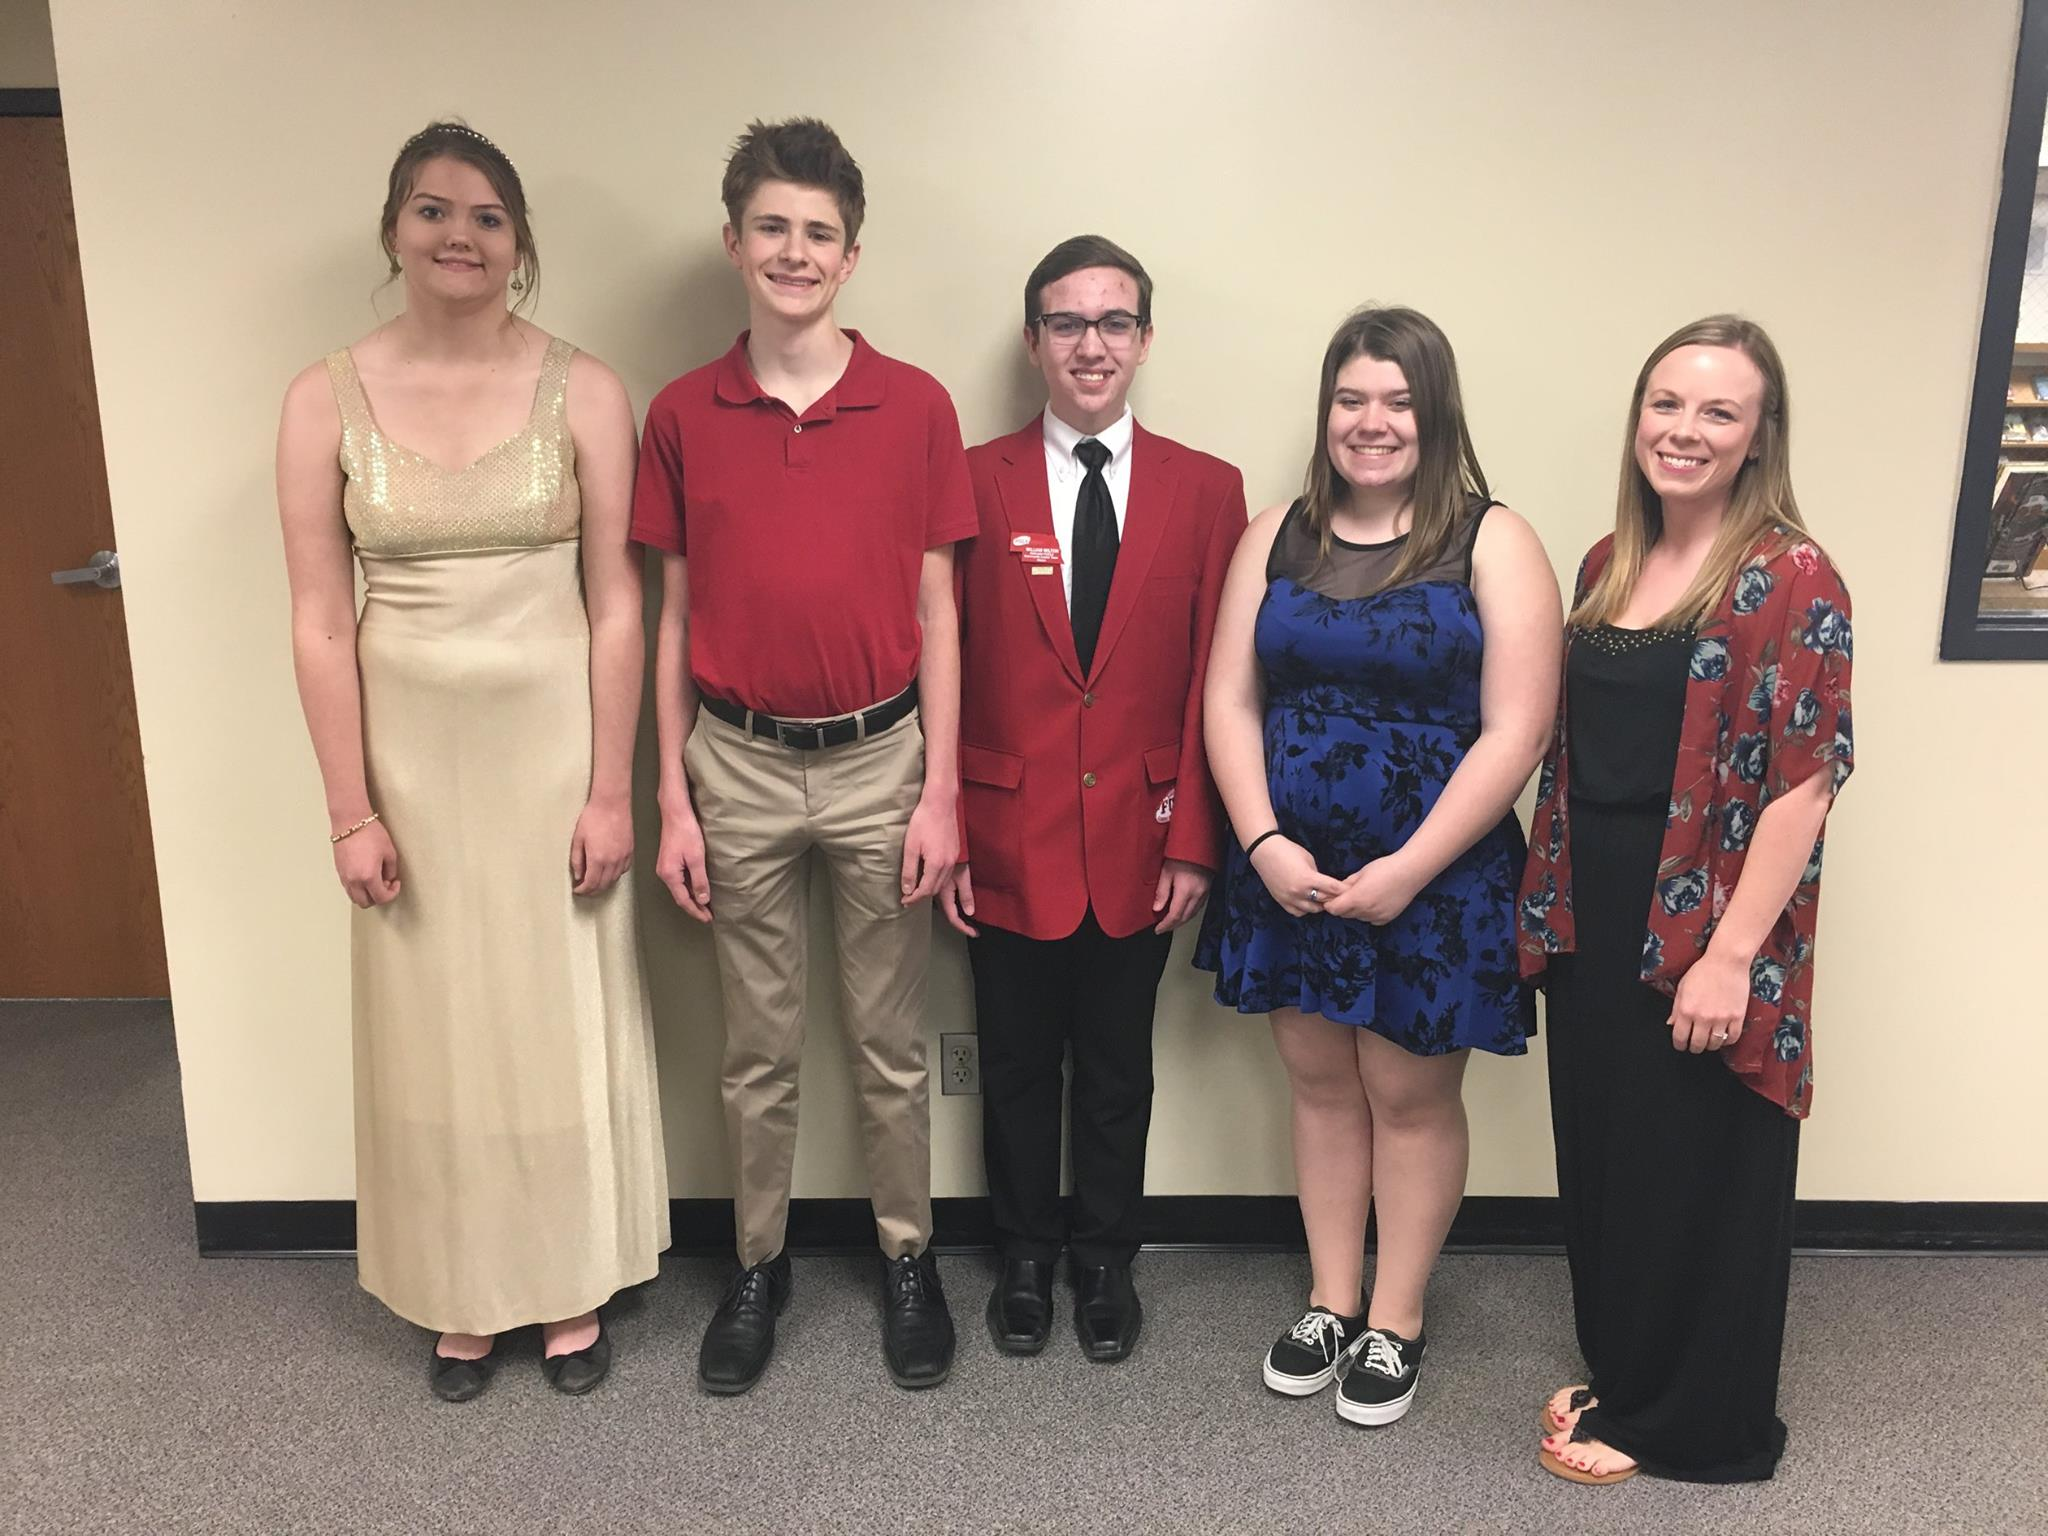 Photo of the chapter officers of the FCCLA organization from 2017 to 2018.